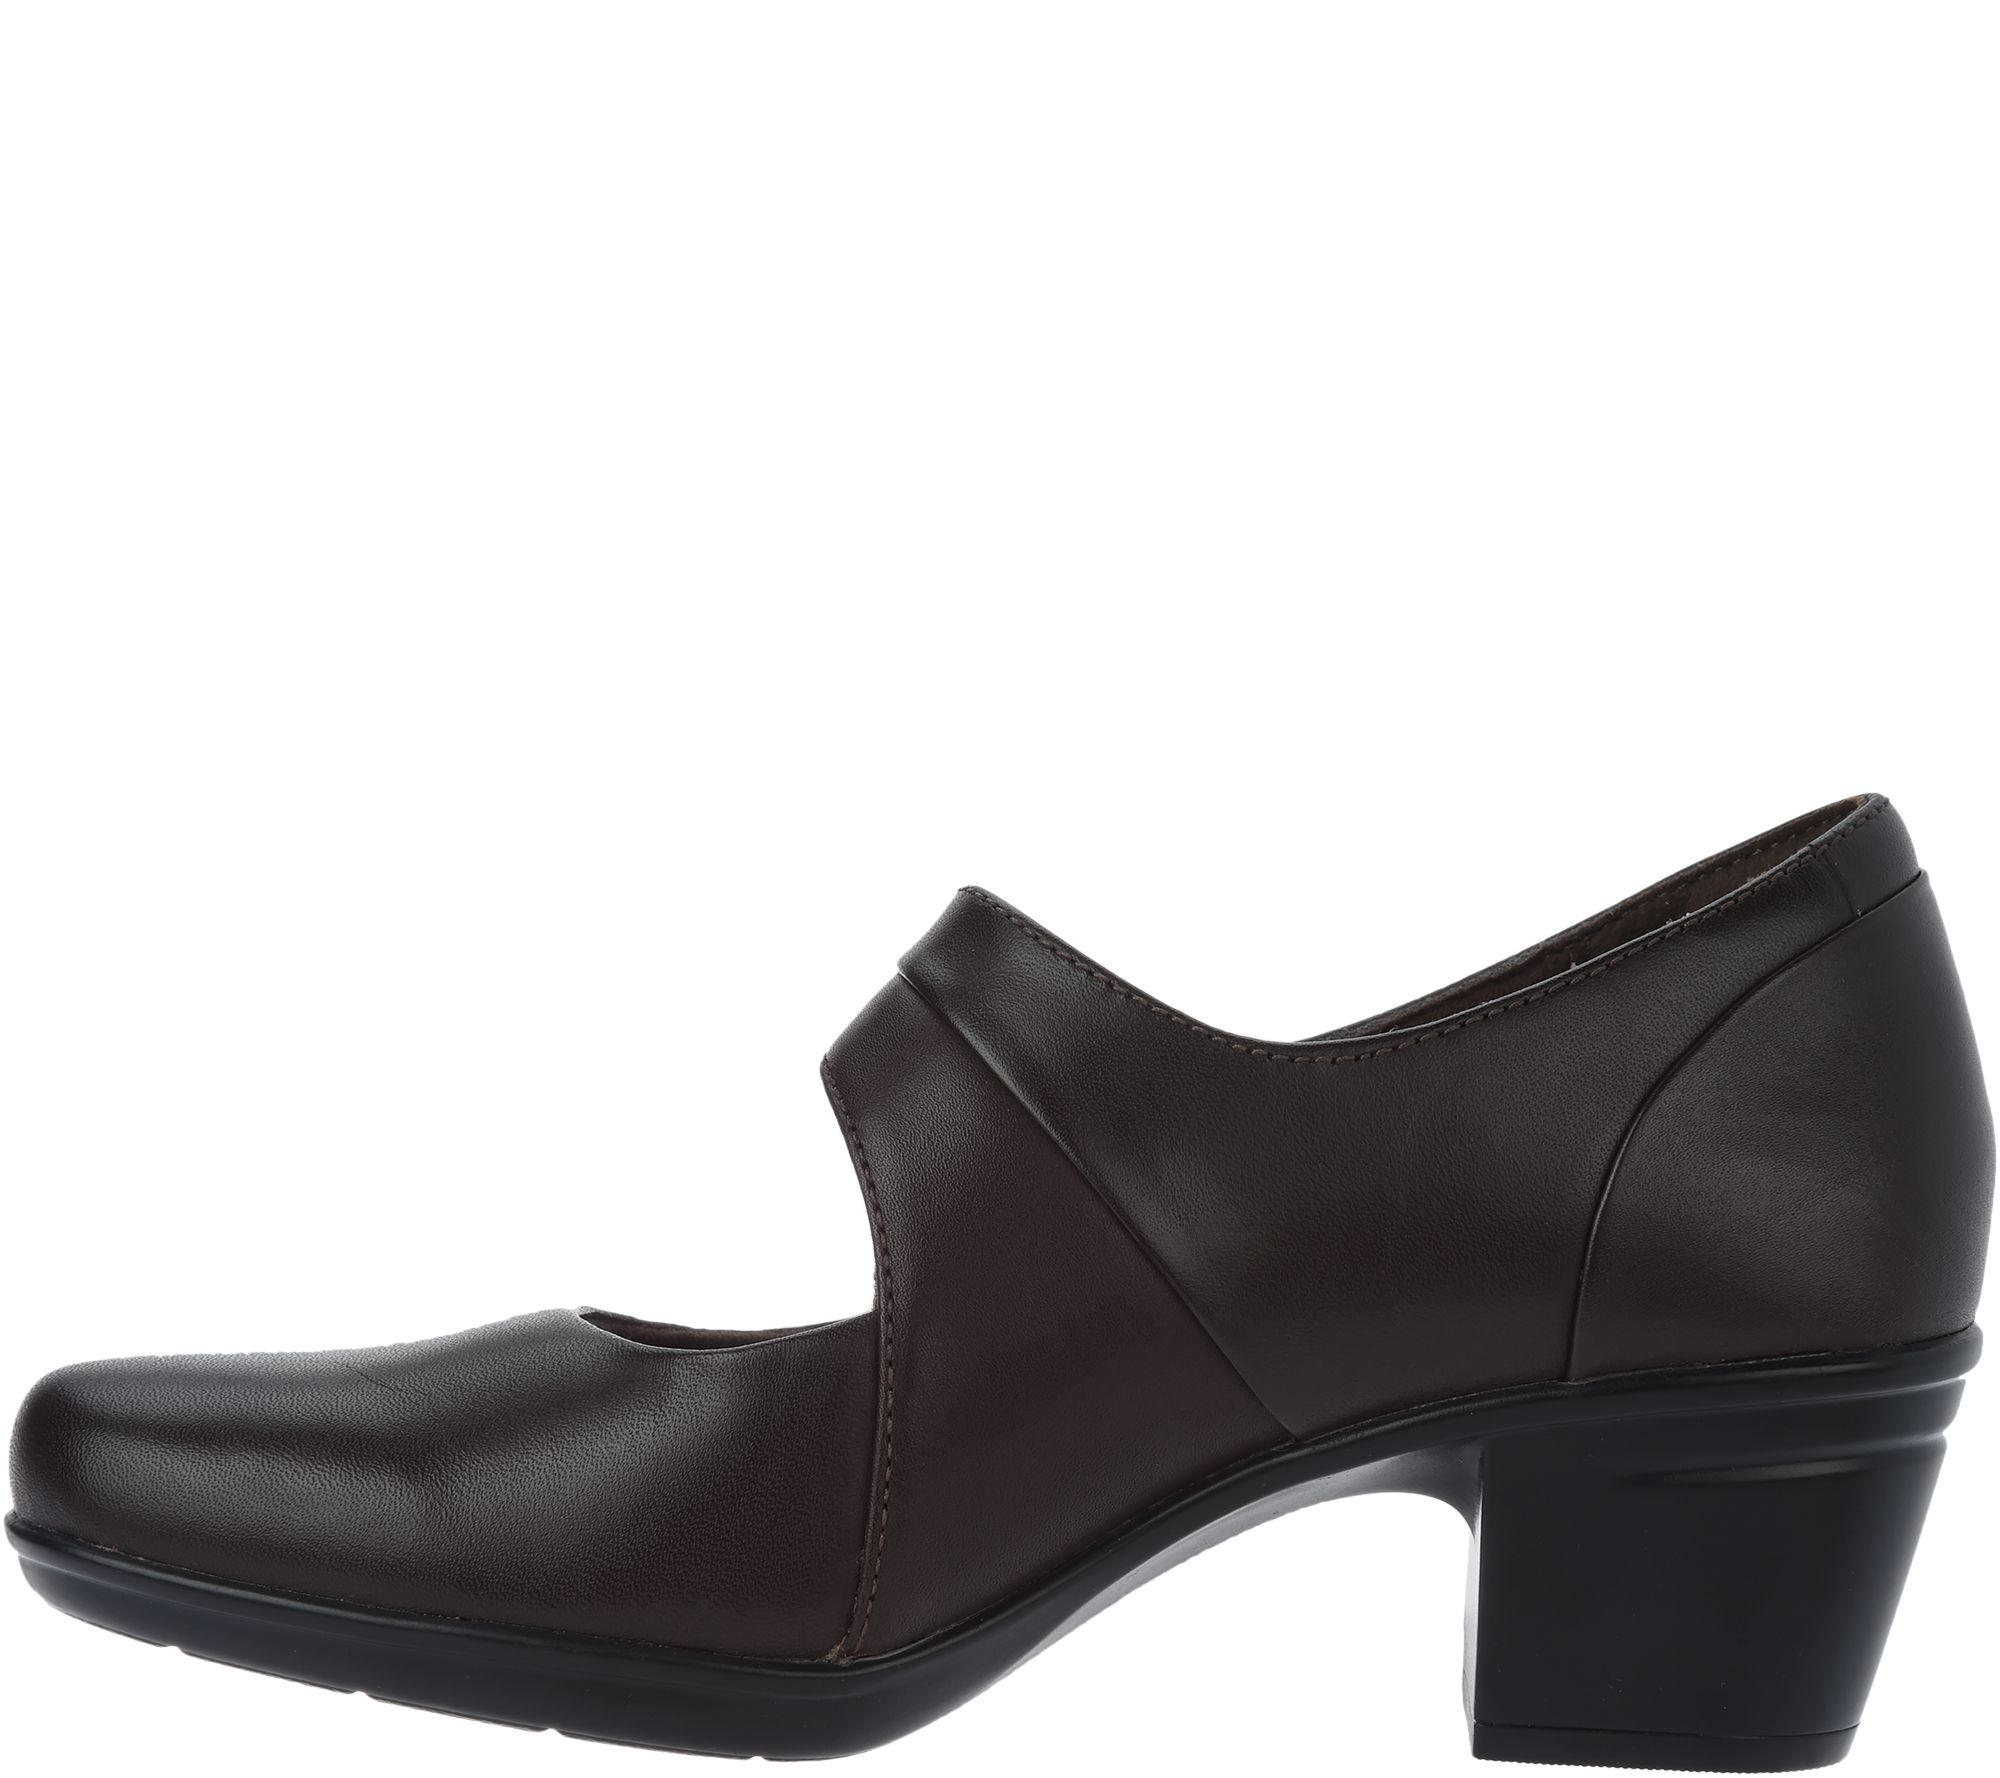 9b999013ae7 Clarks Leather Adjustable Mary Janes- Emslie Lulin - Page 1 — QVC.com